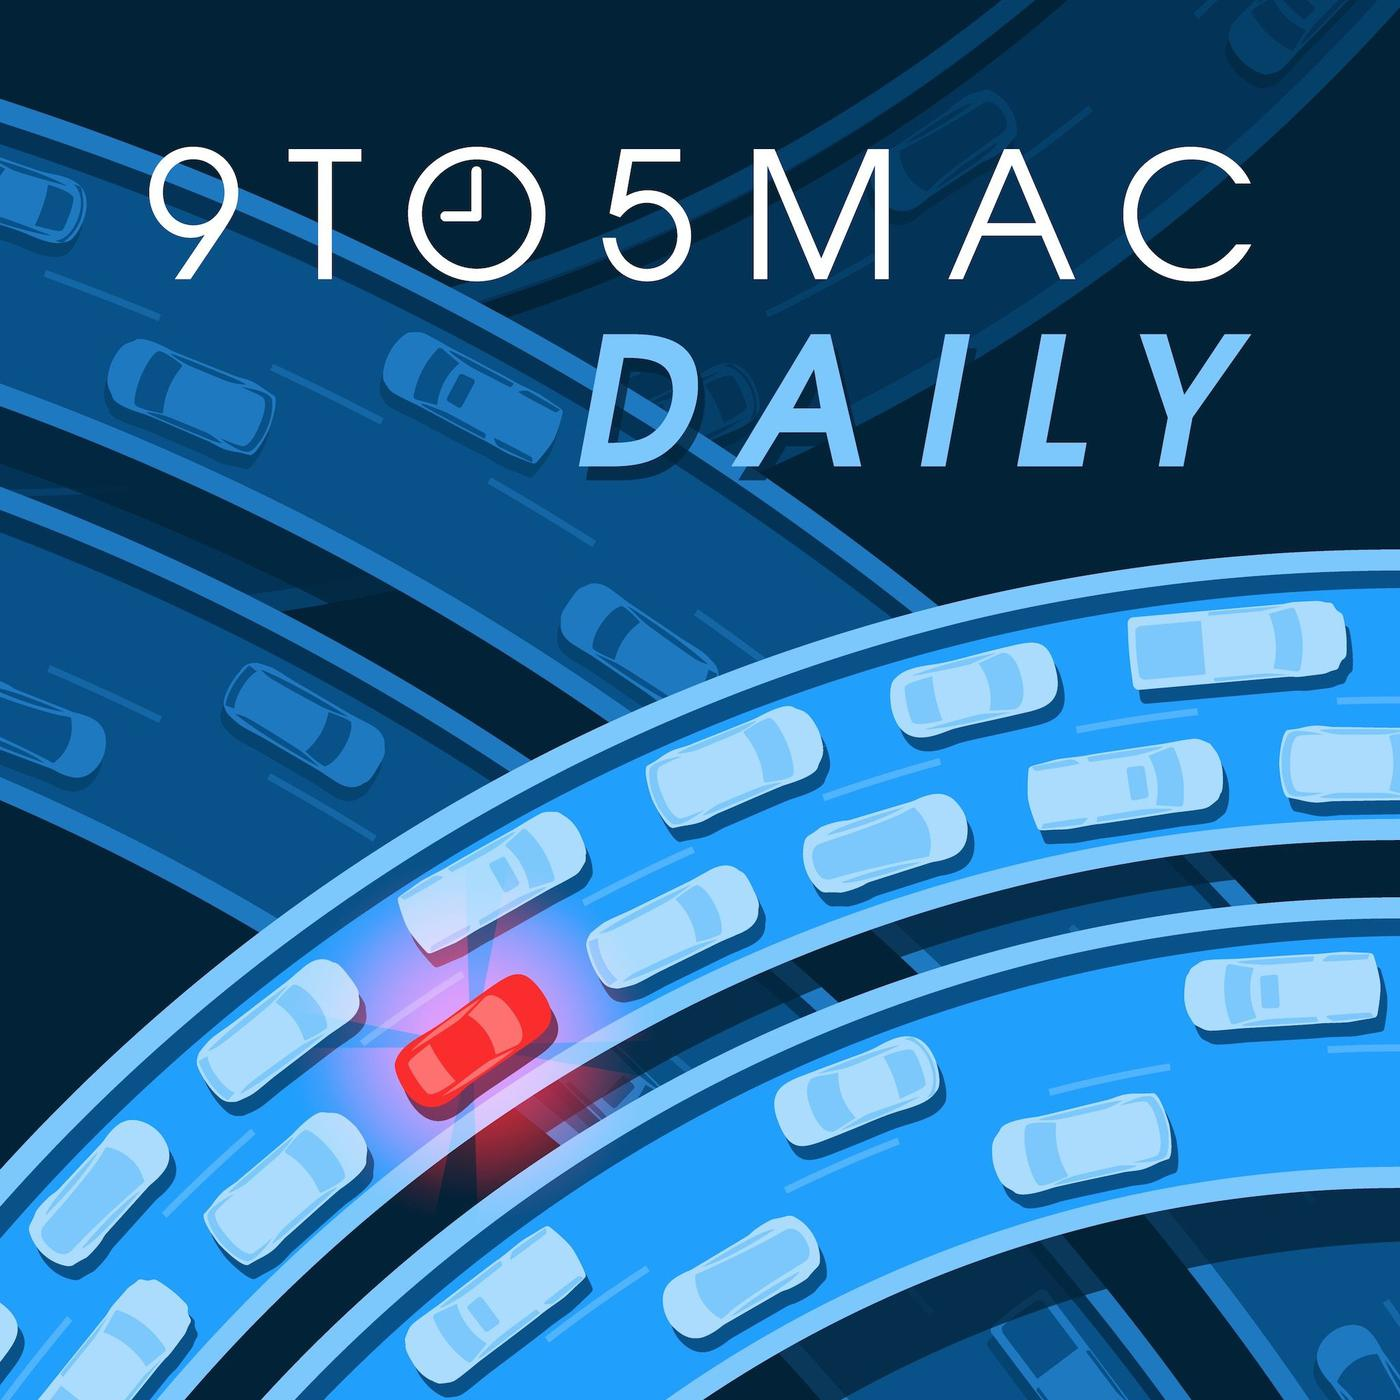 9to5Mac Daily (podcast) - 9to5Mac   Listen Notes